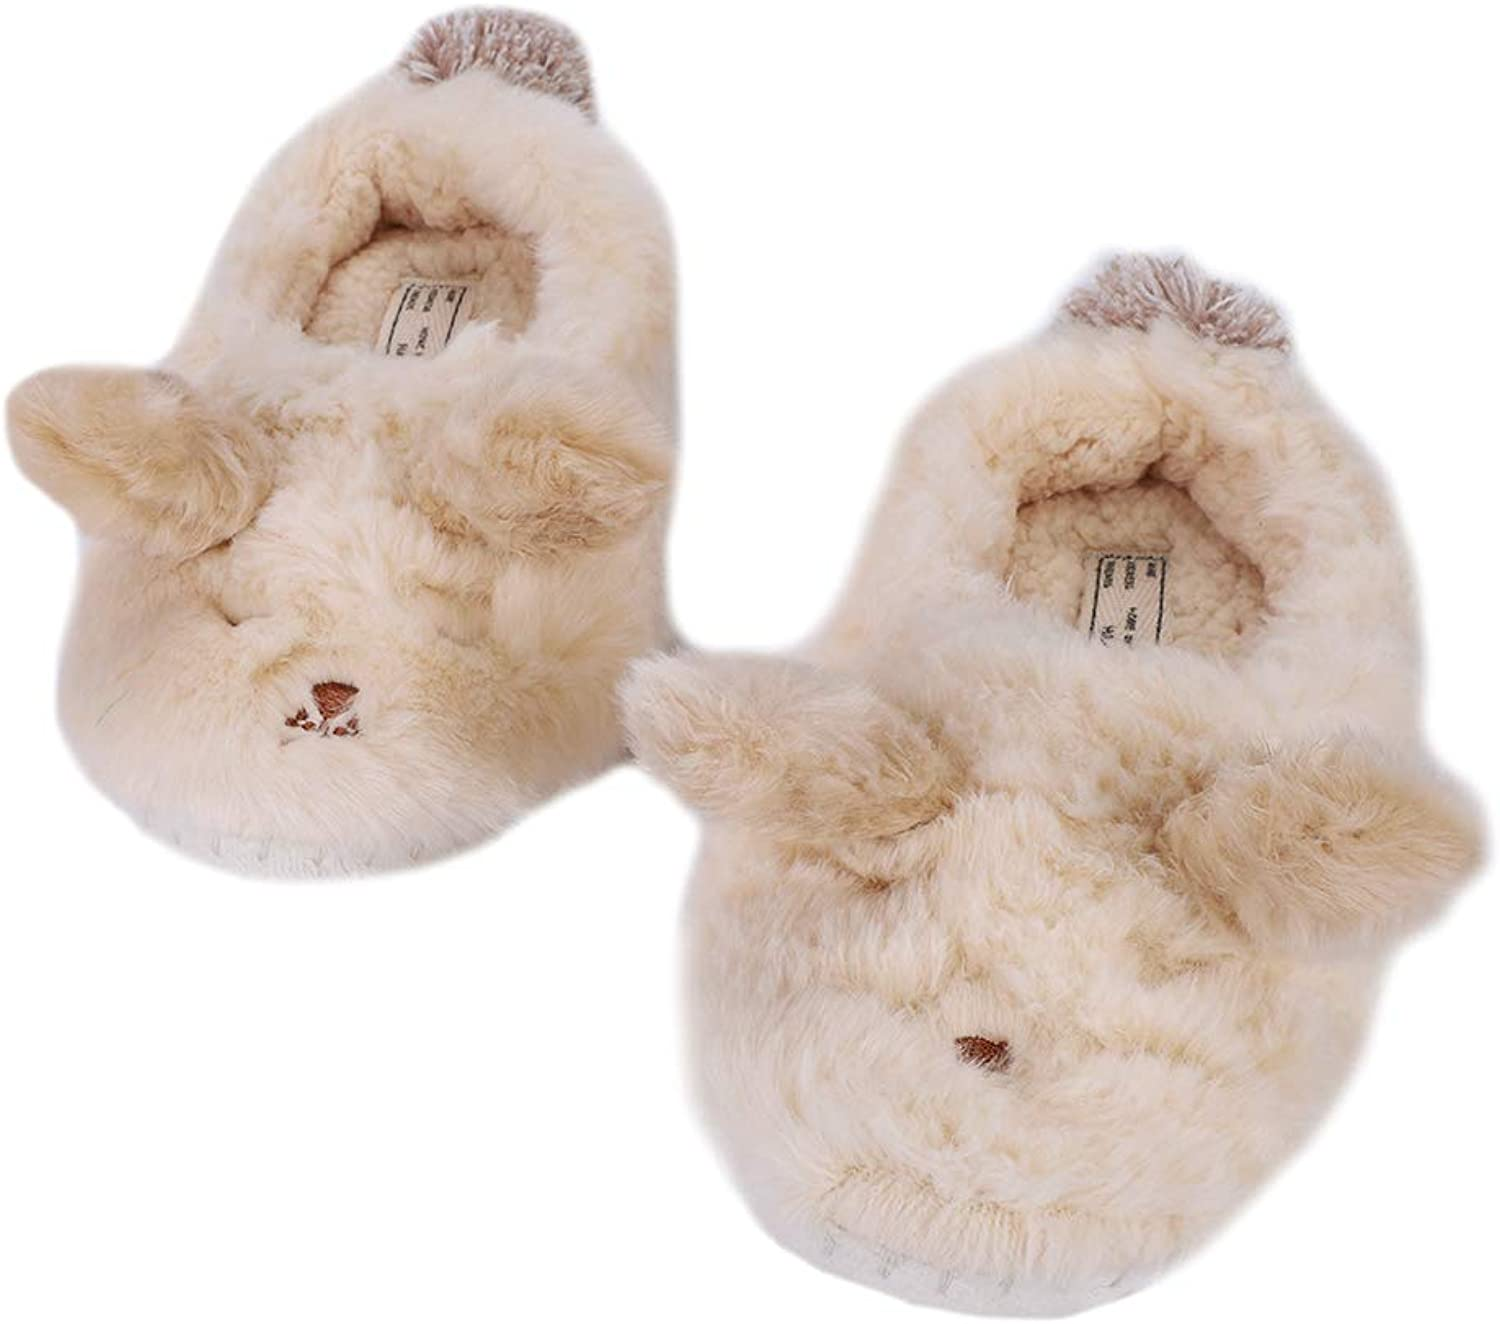 QCHOMEE Women's Fuzzy Soft & Warm Comfort Slippers Cartoon Bear Coral Fleece Memory Foam Plush Lining Cotton shoes Booties Cute Animal Slipper Home Flip Flop